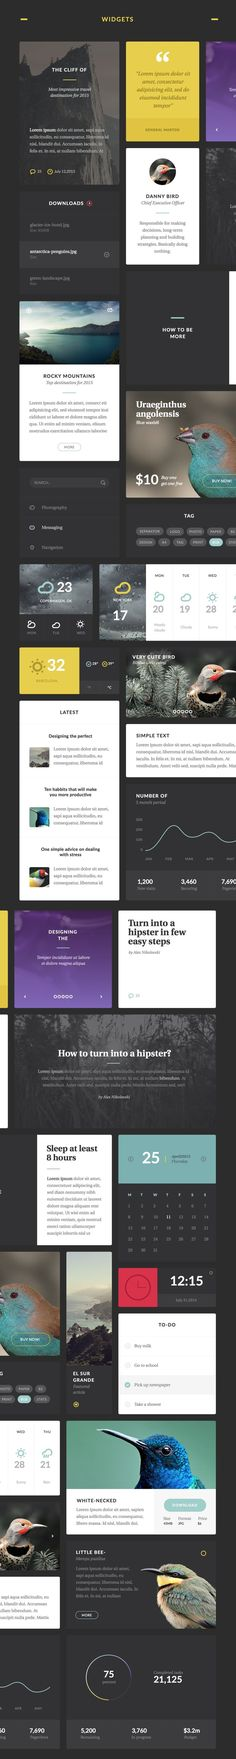 Aves UI Kit https://ui8.net/product/aves-ui-kit. If you like UX, design, or design thinking, check out theuxblog.com